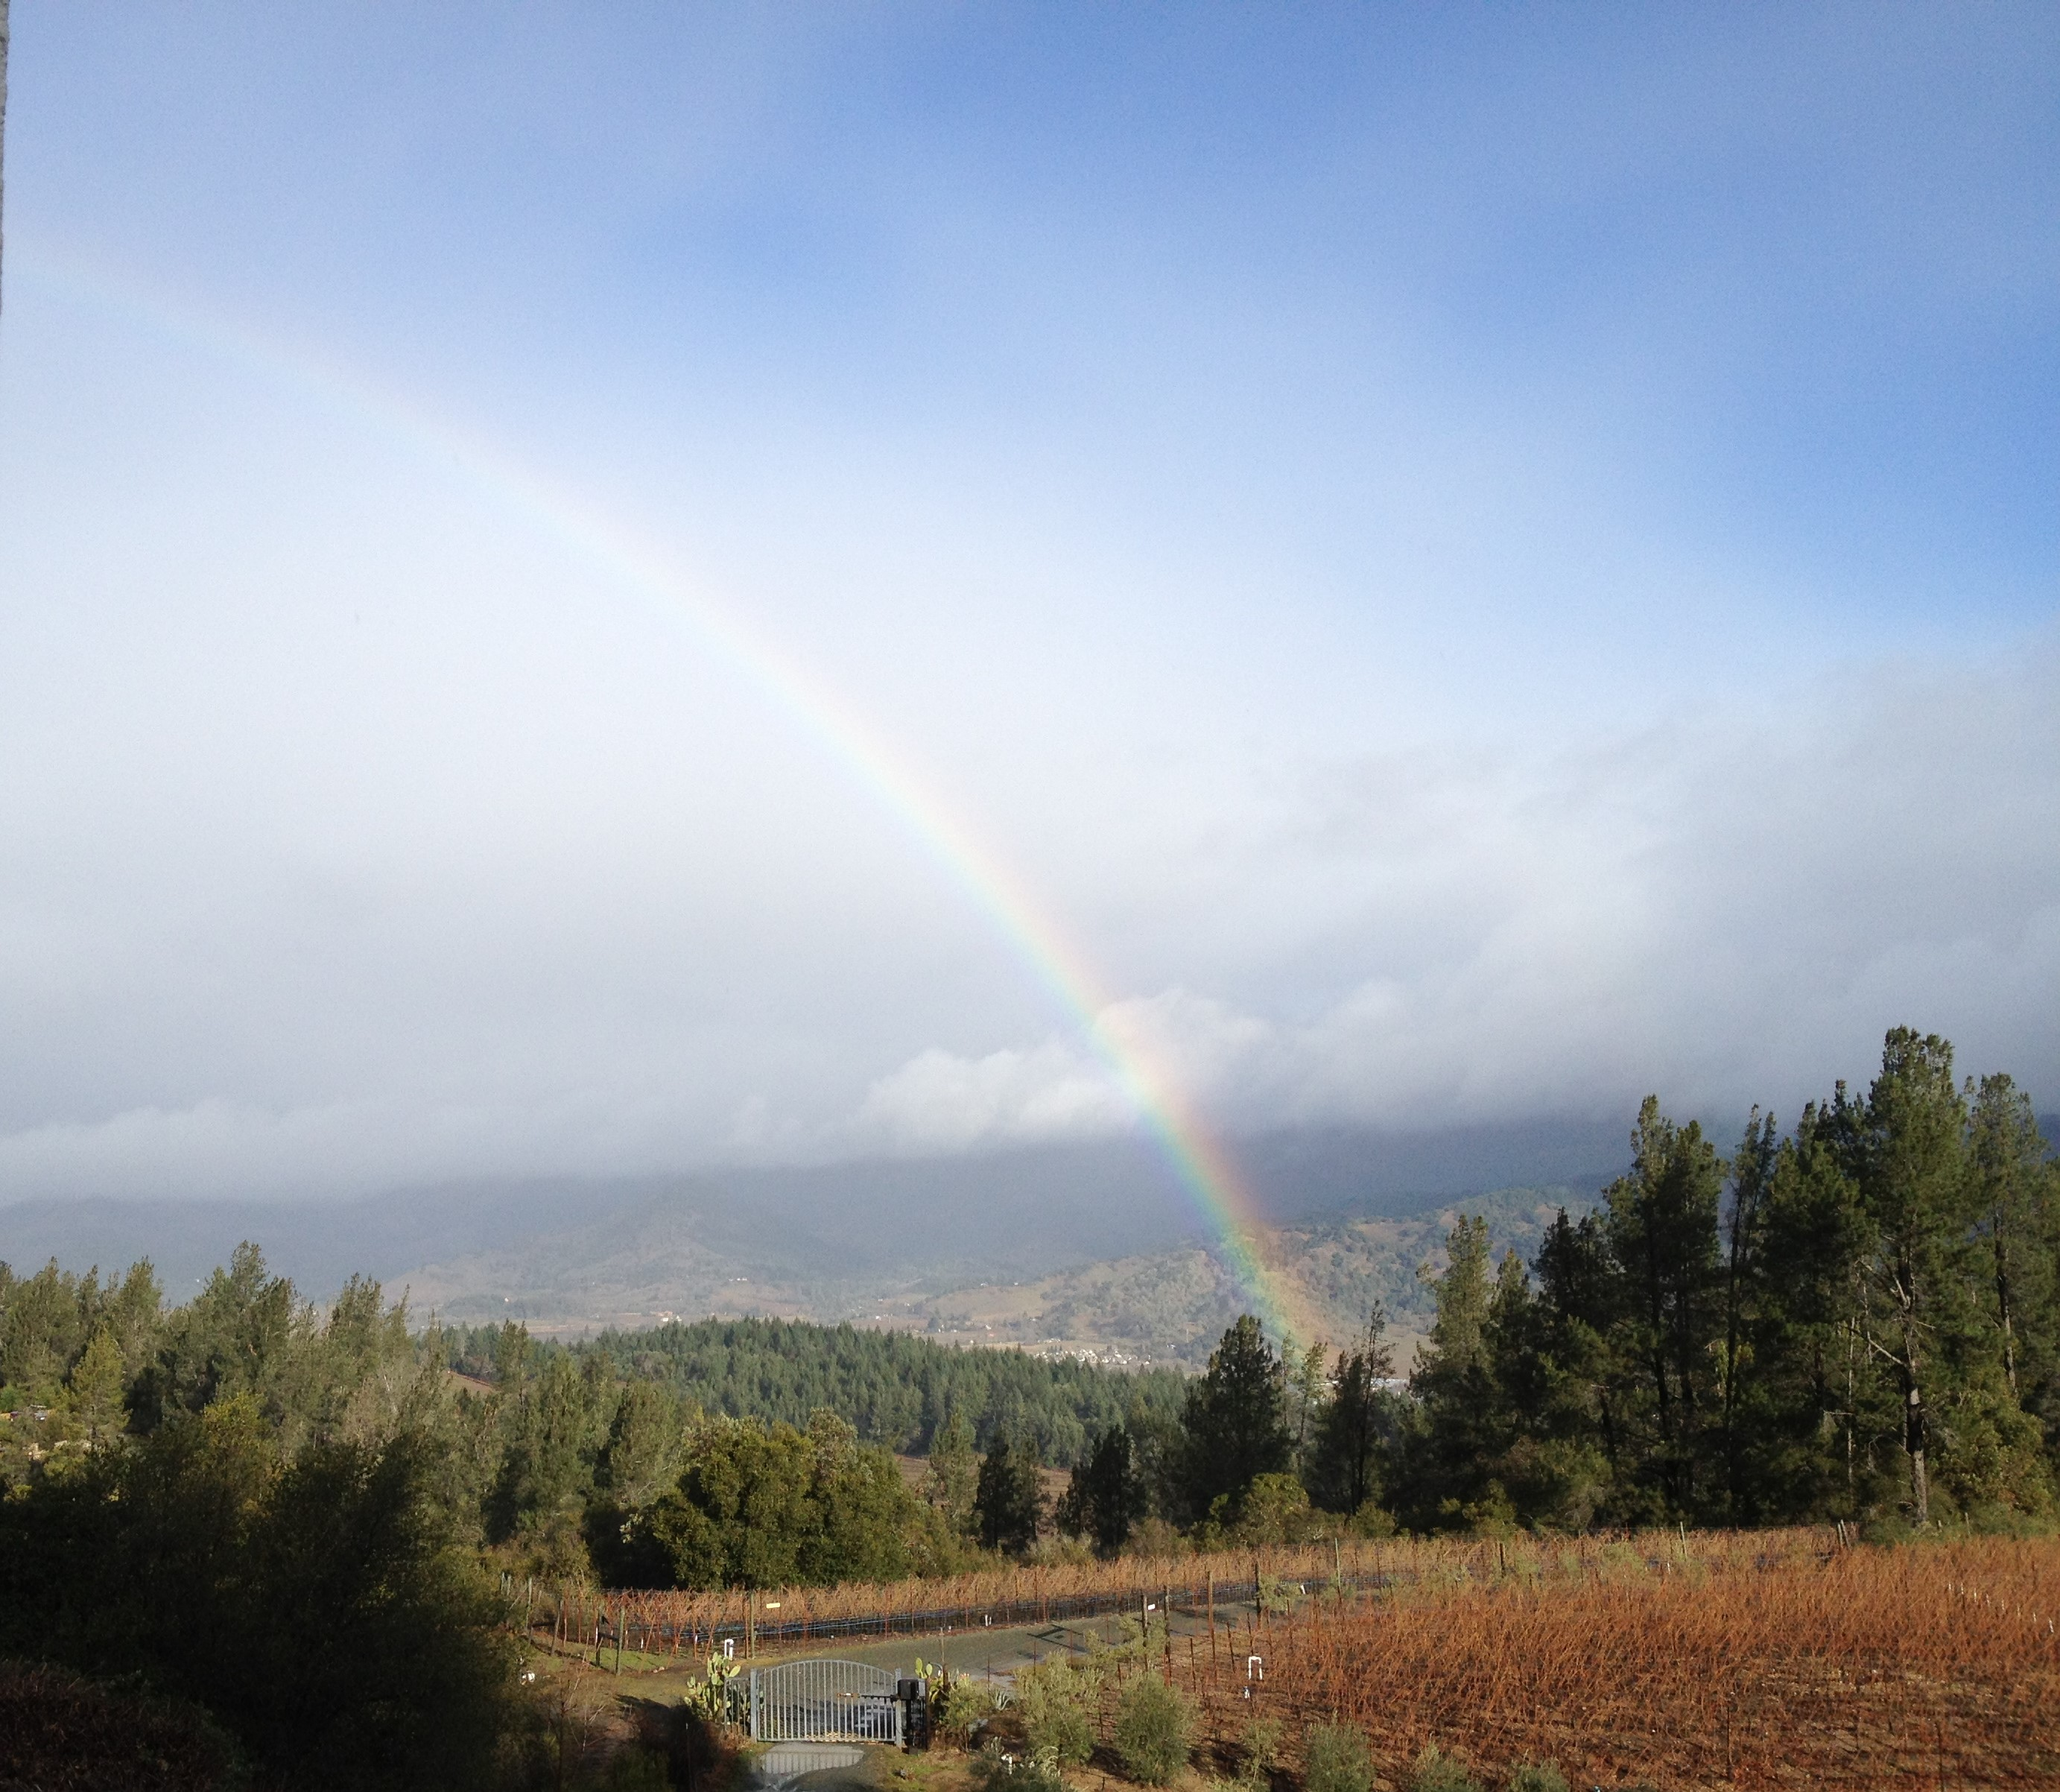 mueller family vineyards rainbow